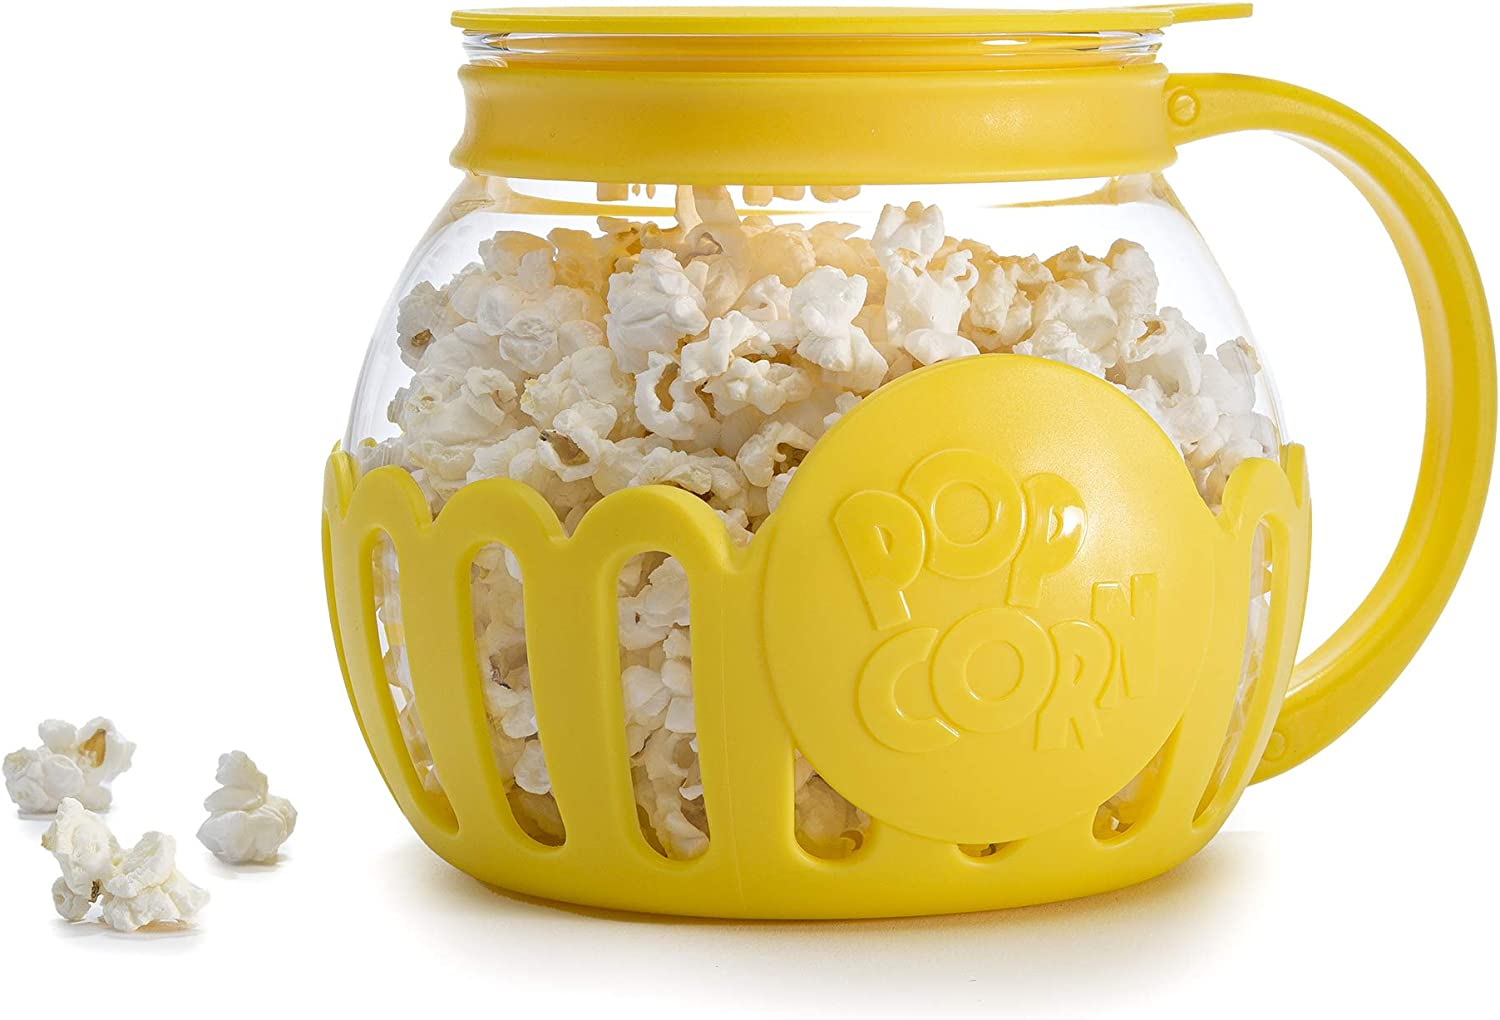 Yellow Dishwasher Safe 3-in-1 Silicone Lid BPA Free Ecolution 1.5 Quart Snack Size Original Microwave Micro-Pop Popcorn Popper Tempered Glass